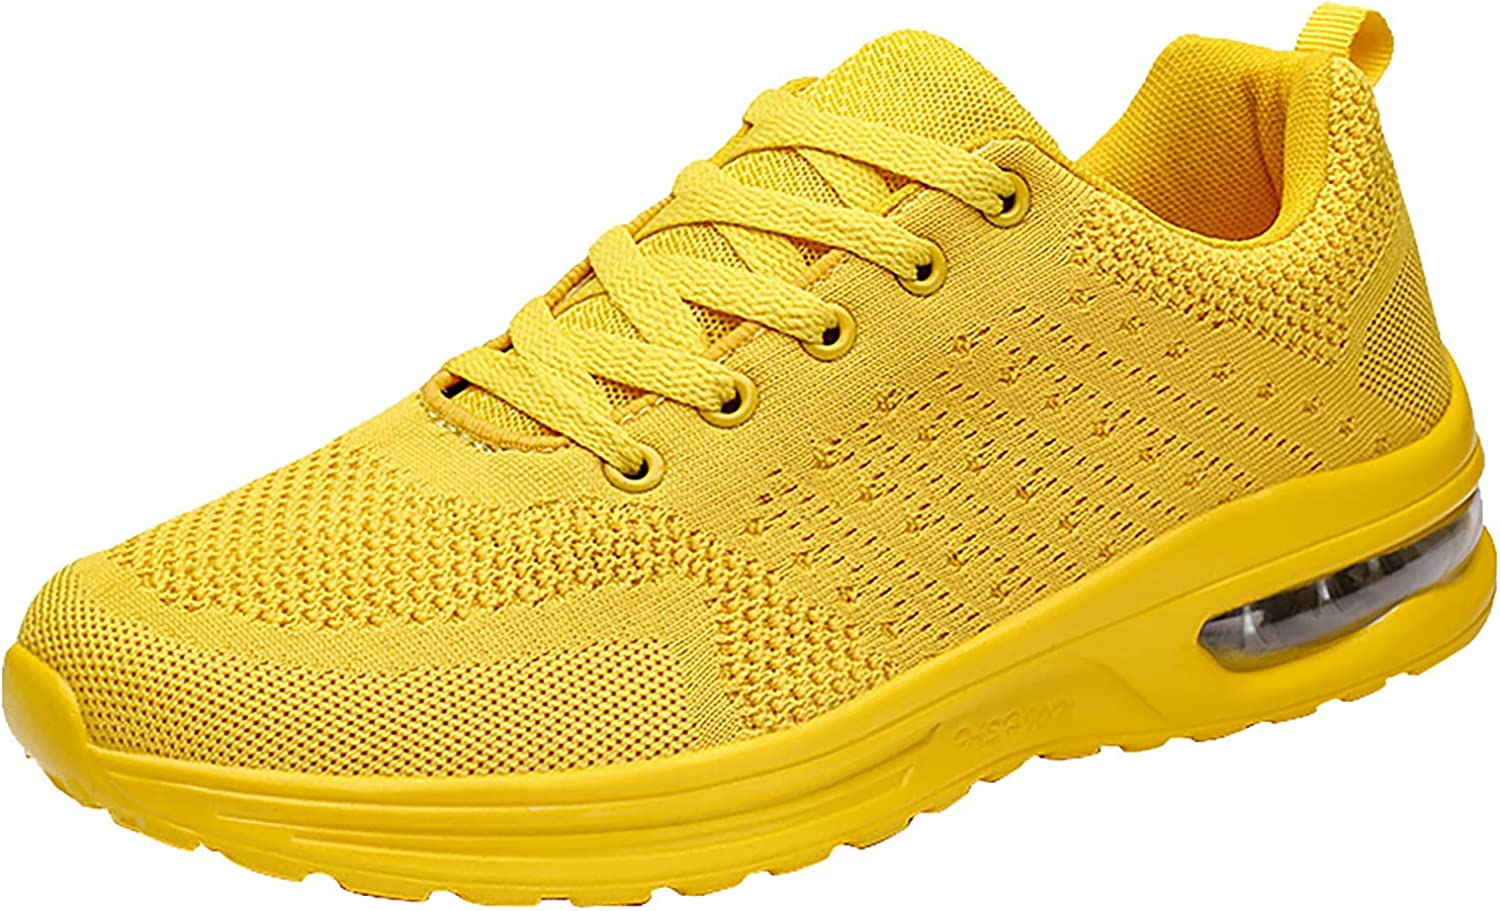 Women's Air Athletic Tennis Sneaker, Lace Up Mesh Breathable Running Shoes, Sport Gym Jogging Fitness Walking Shoes